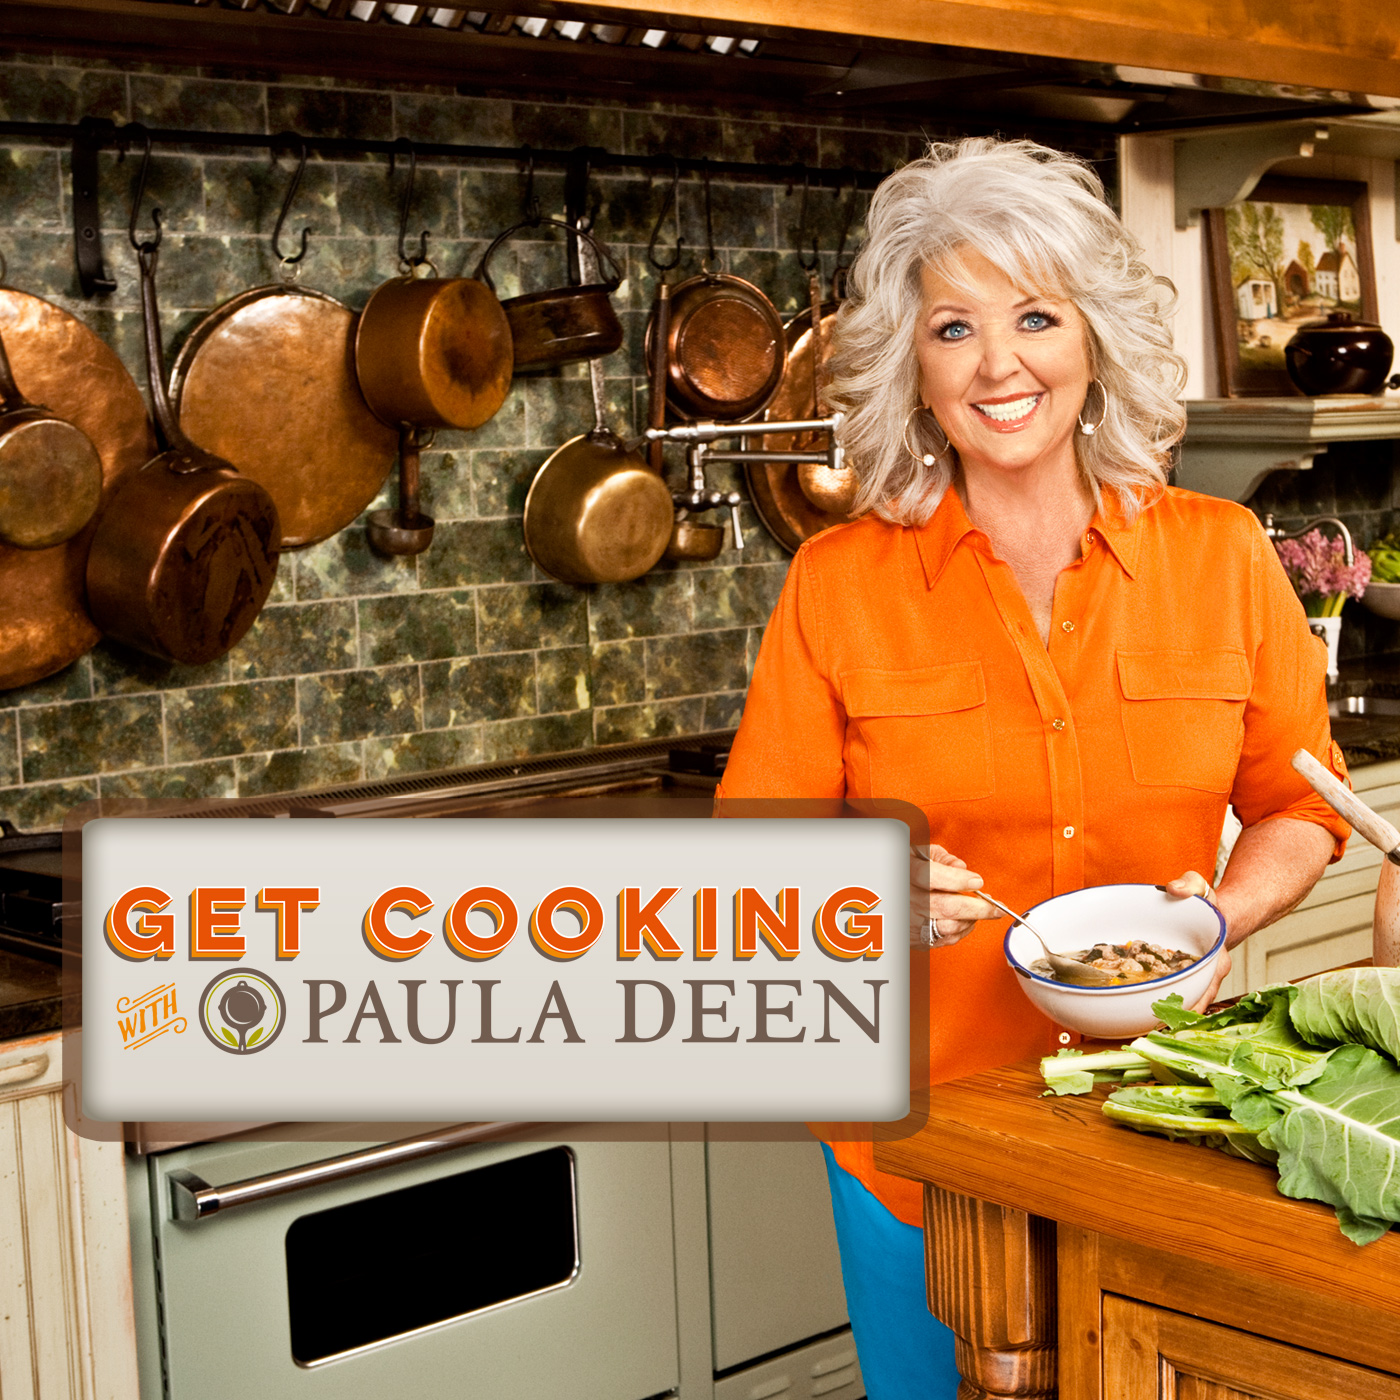 Get Cooking with Paula Deen